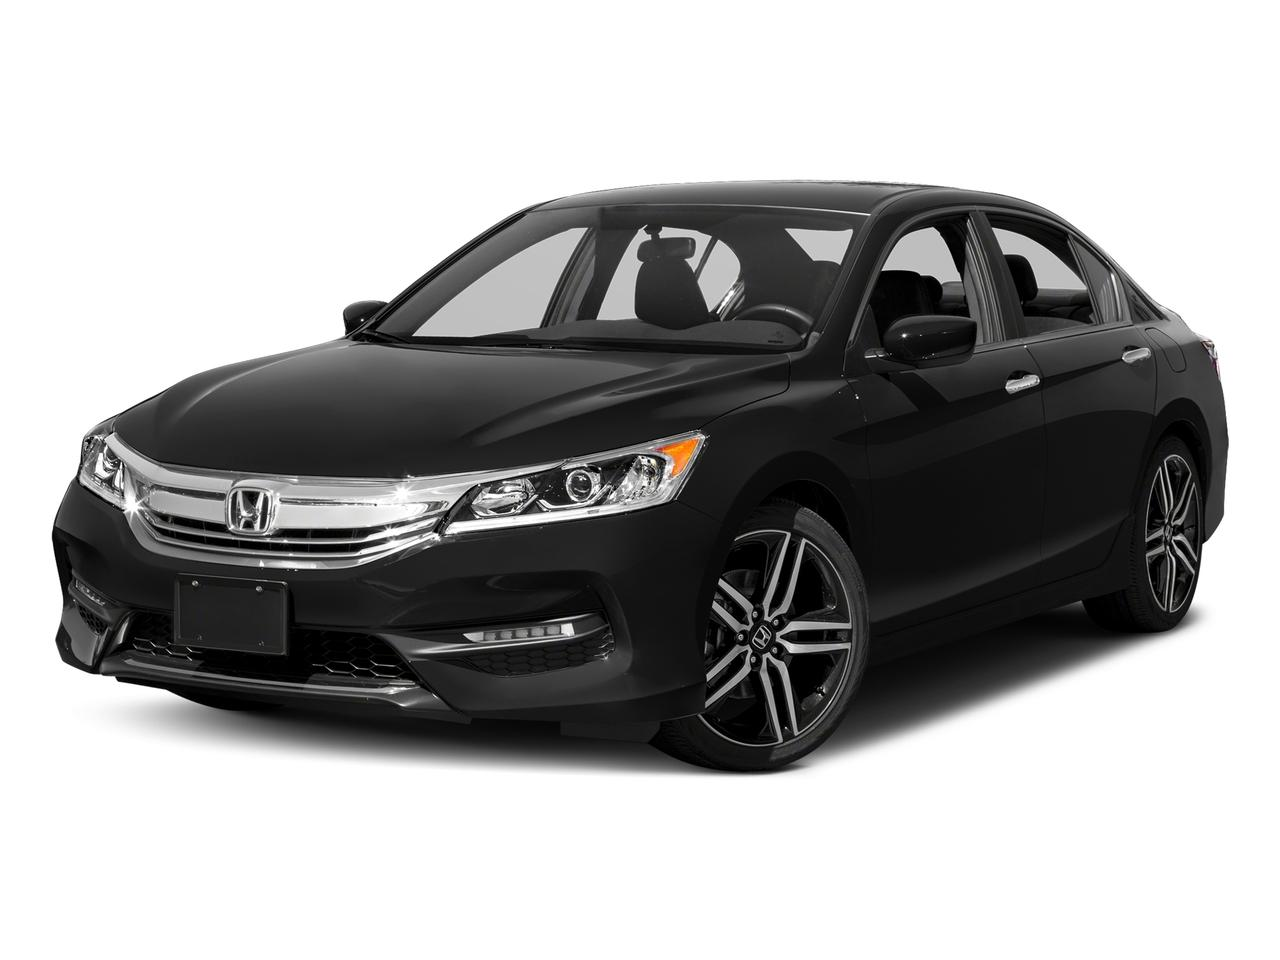 2017 Honda Accord Sedan Vehicle Photo in Lafayette, LA 70503